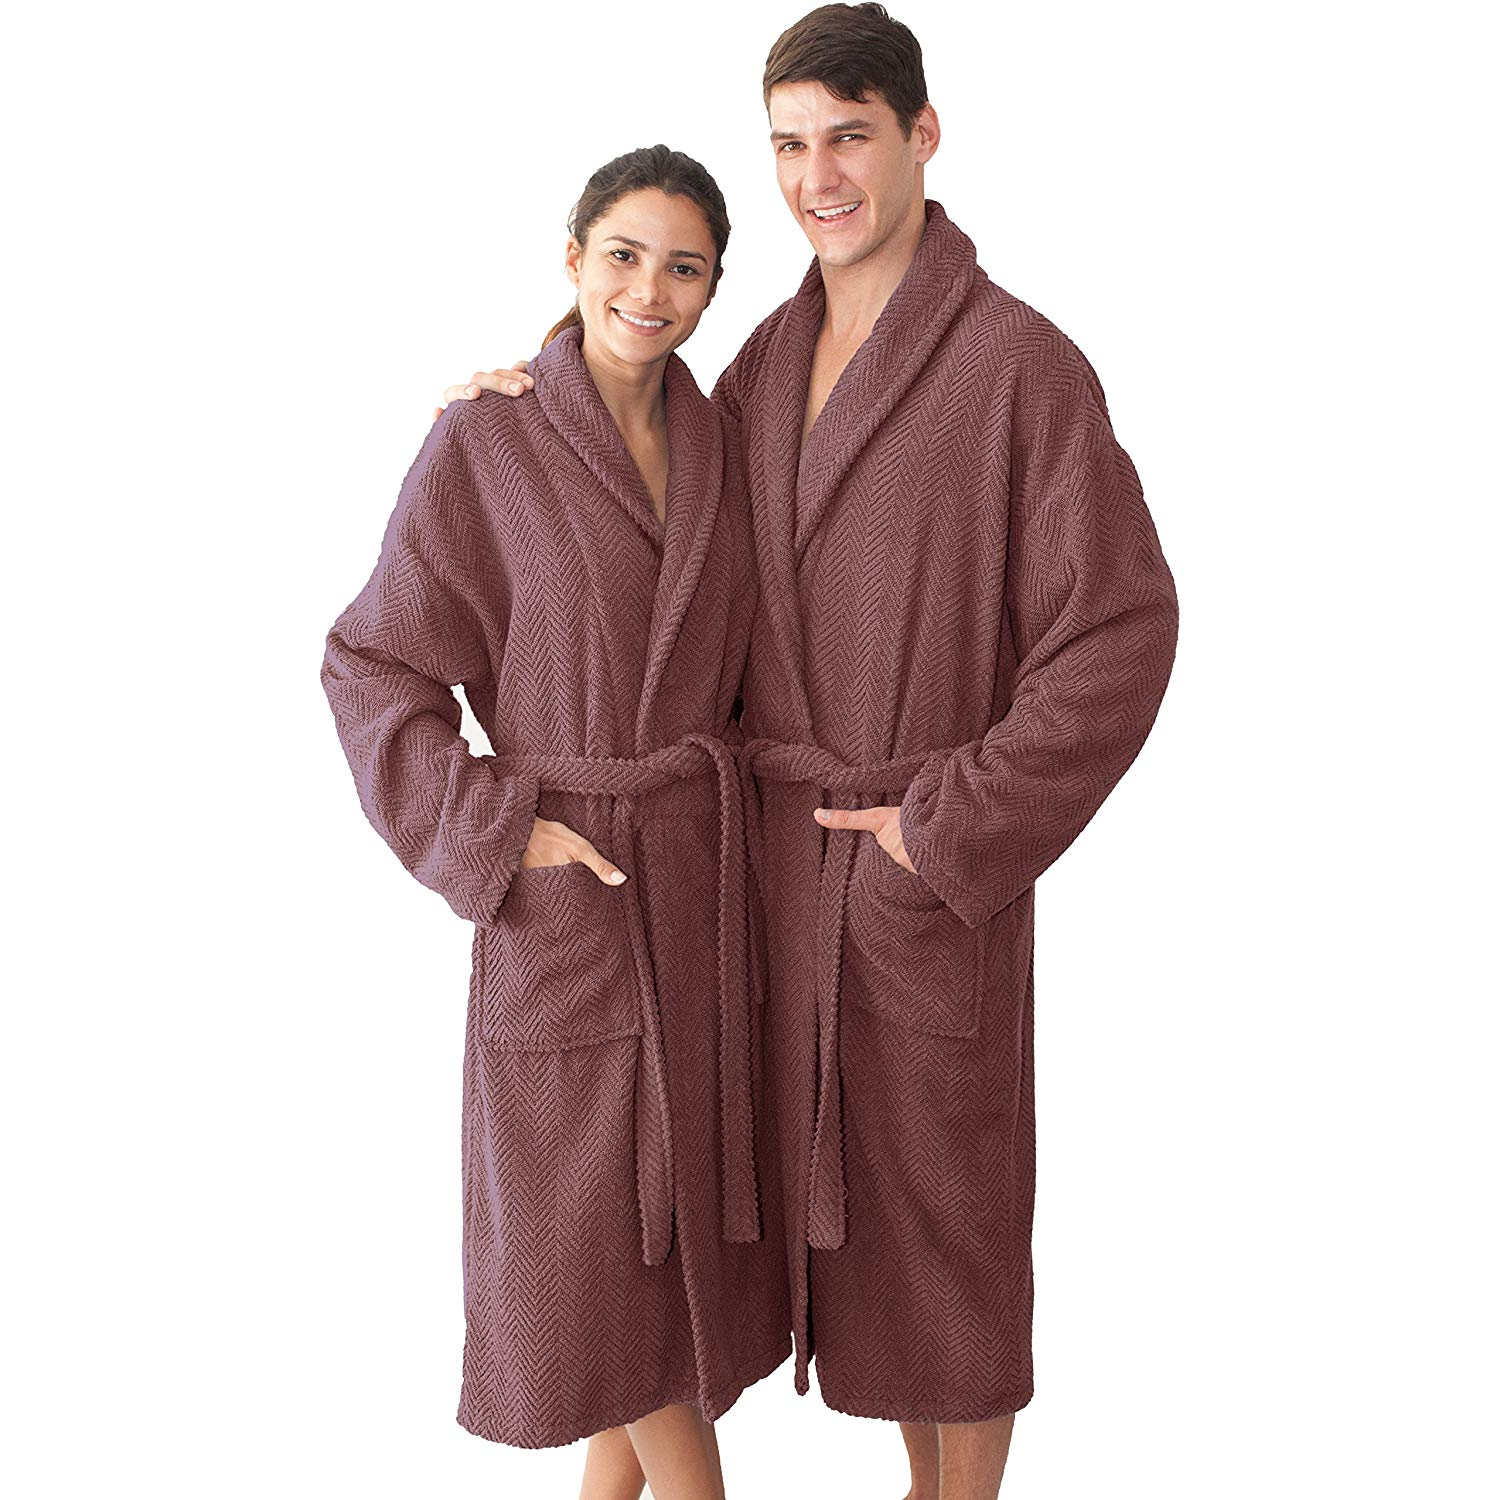 3db47684c5 Get Quotations · HT 46 Inches Plum Purple Solid Color Small Medium Unisex  Bathrobe